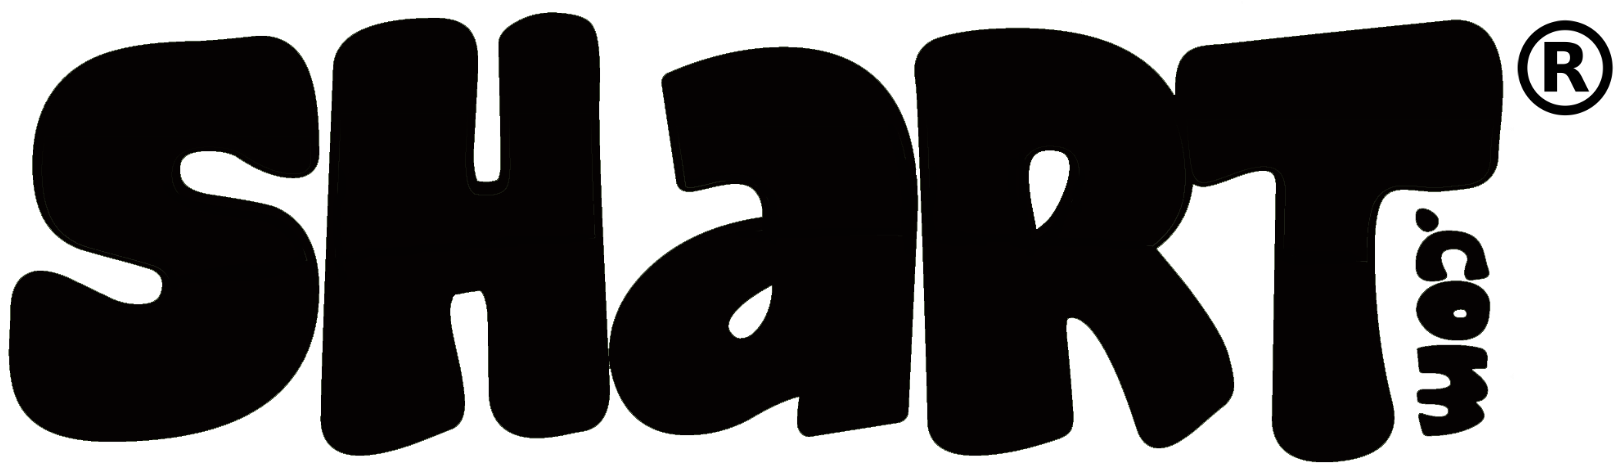 Shart.com Logo with Registered Trademark Symbol